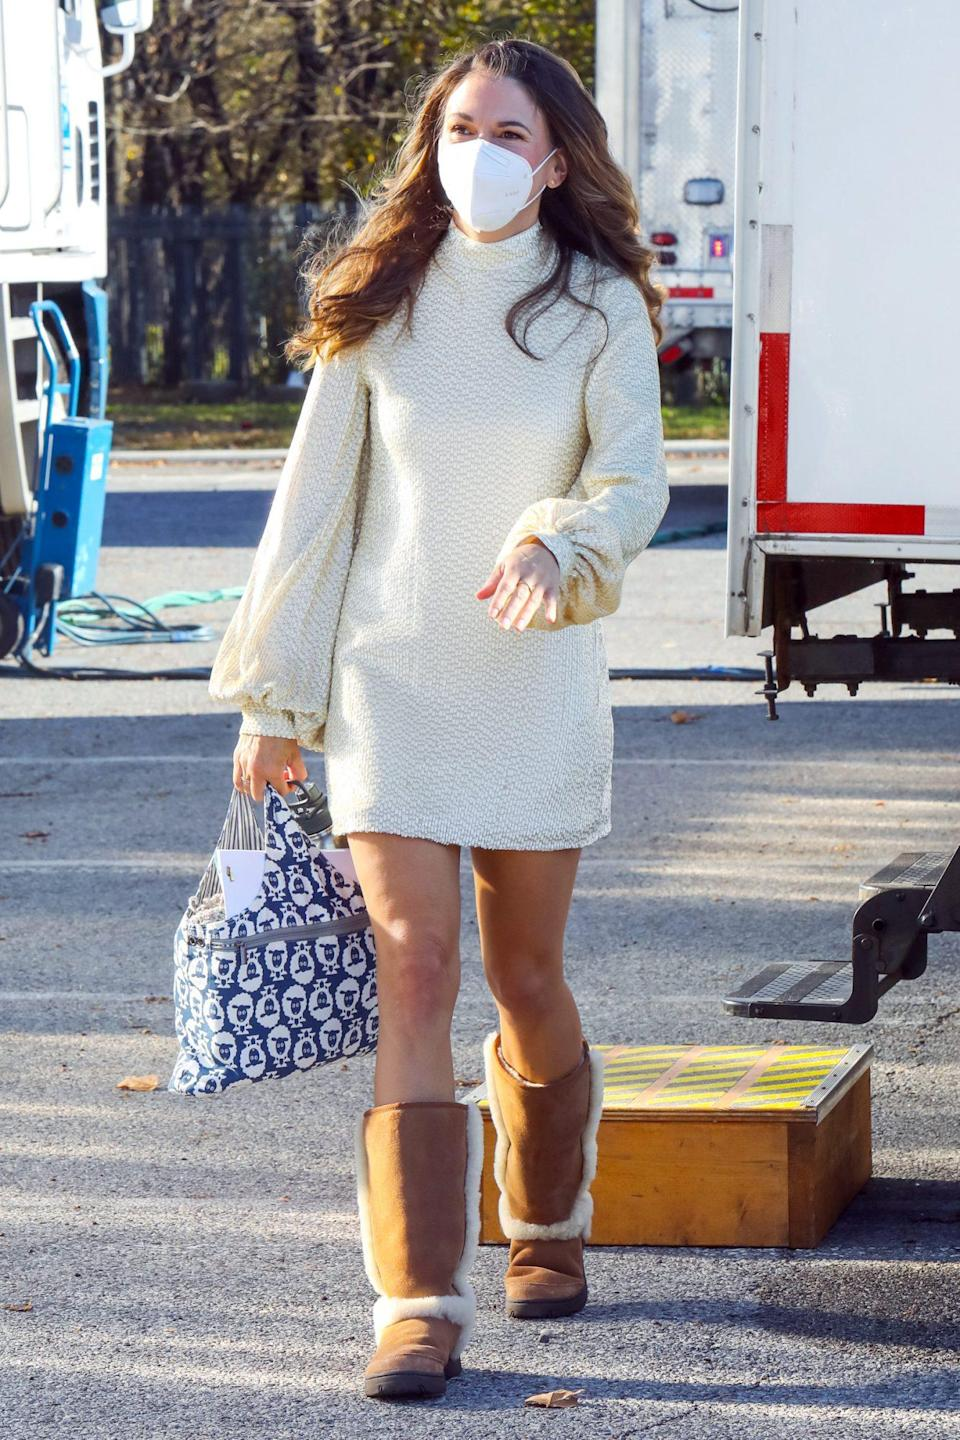 <p>Sutton Foster strolls onto the set of <em>Younger</em> on Tuesday in N.Y.C., wearing a long sleeve dress, white mask and comfy boots.</p>